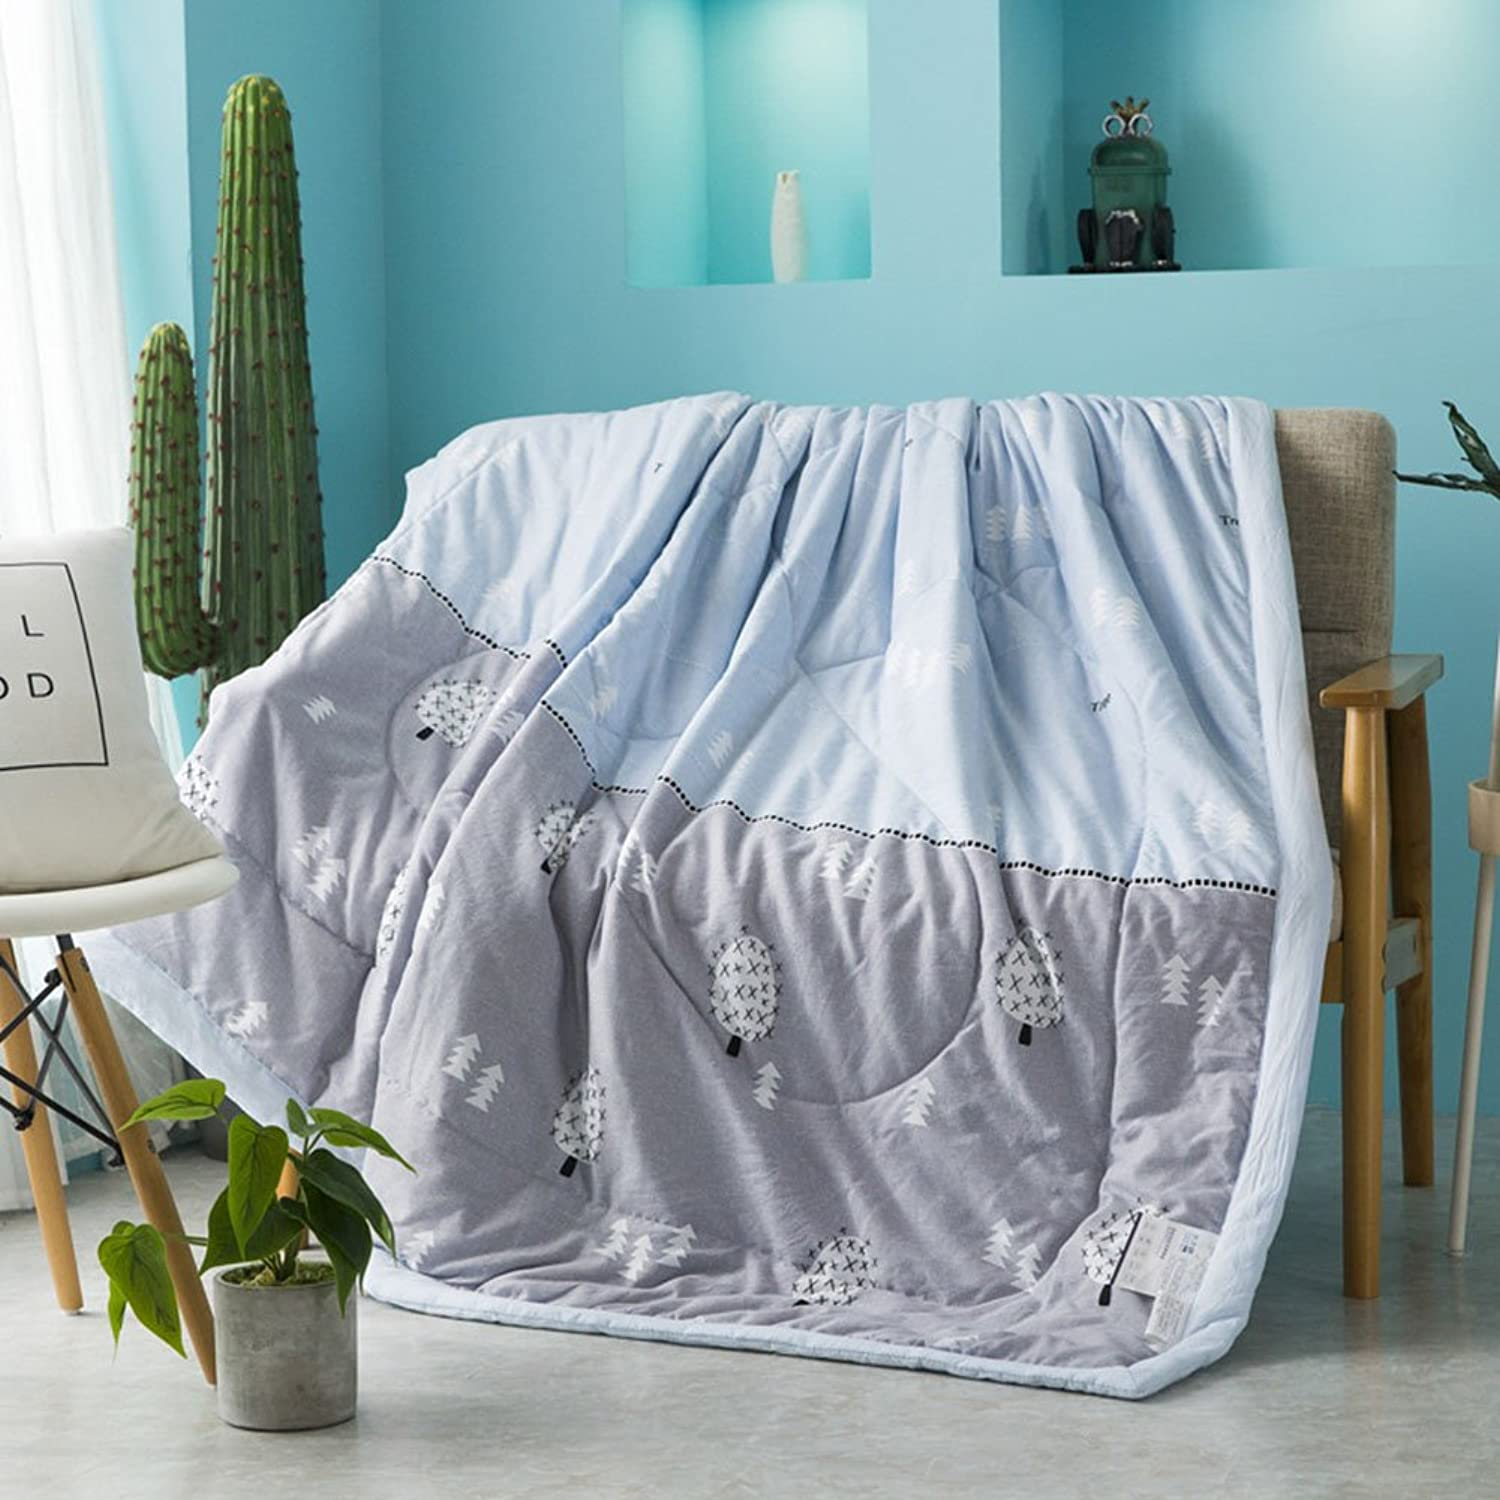 Uther Summer Thin Quilt Coverlet Lightweight for Adults and Teens Thin Comforter for Summer or Spring (Ant Forest,Twin)